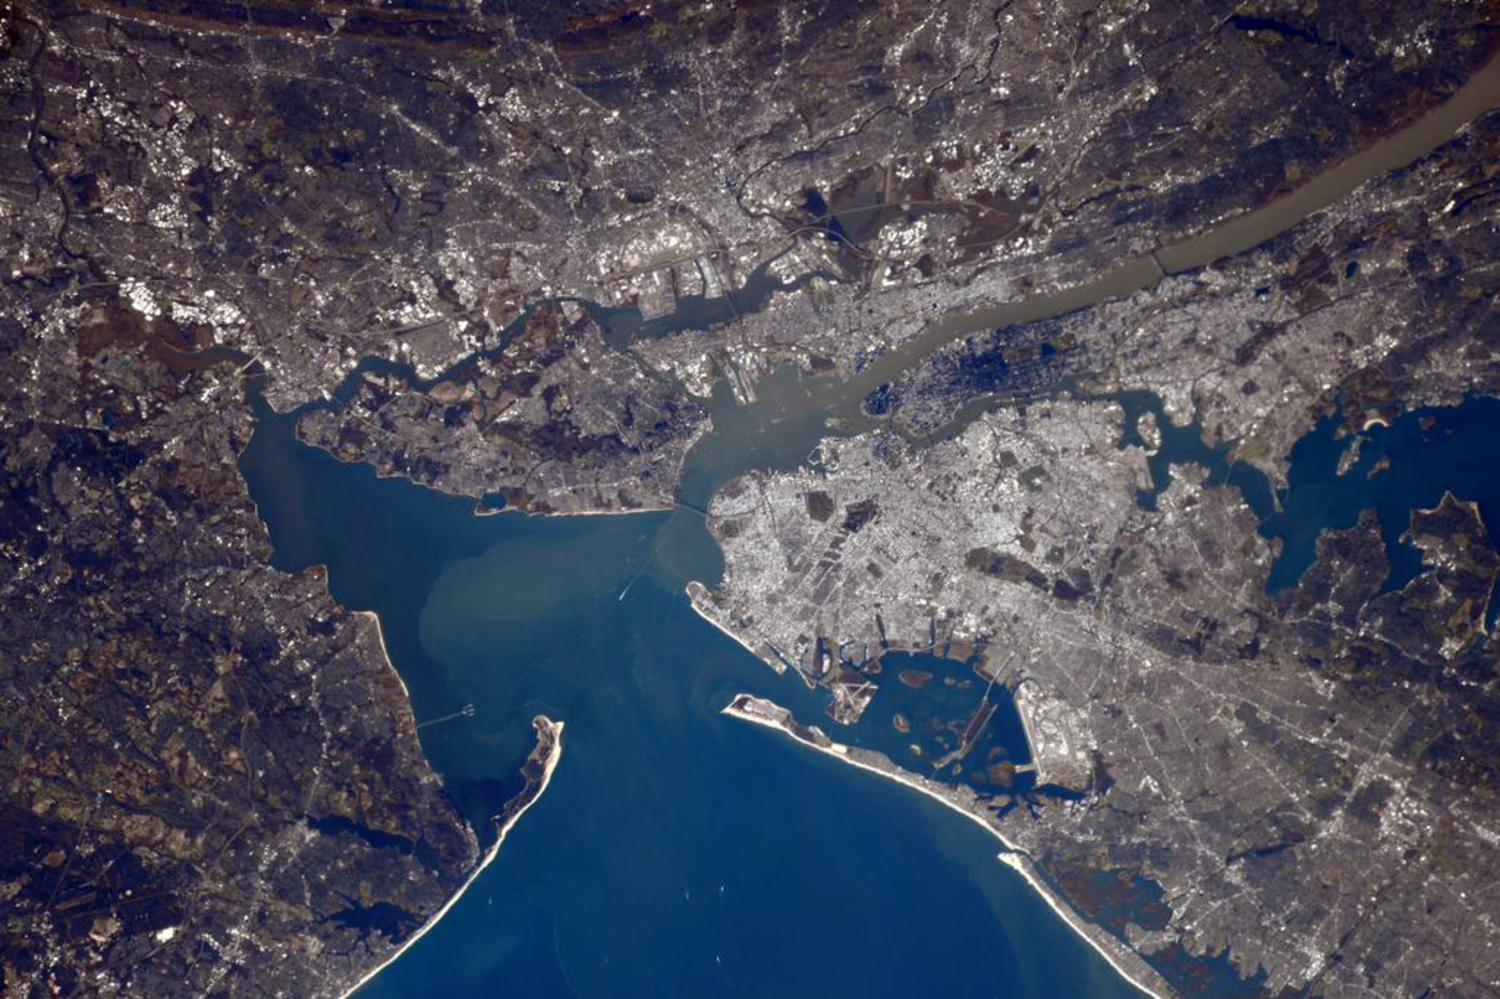 #NewYork NewYork! Can almost see the Statue of Liberty. Which is, by the way, #UNESCO #WorldHeritage!